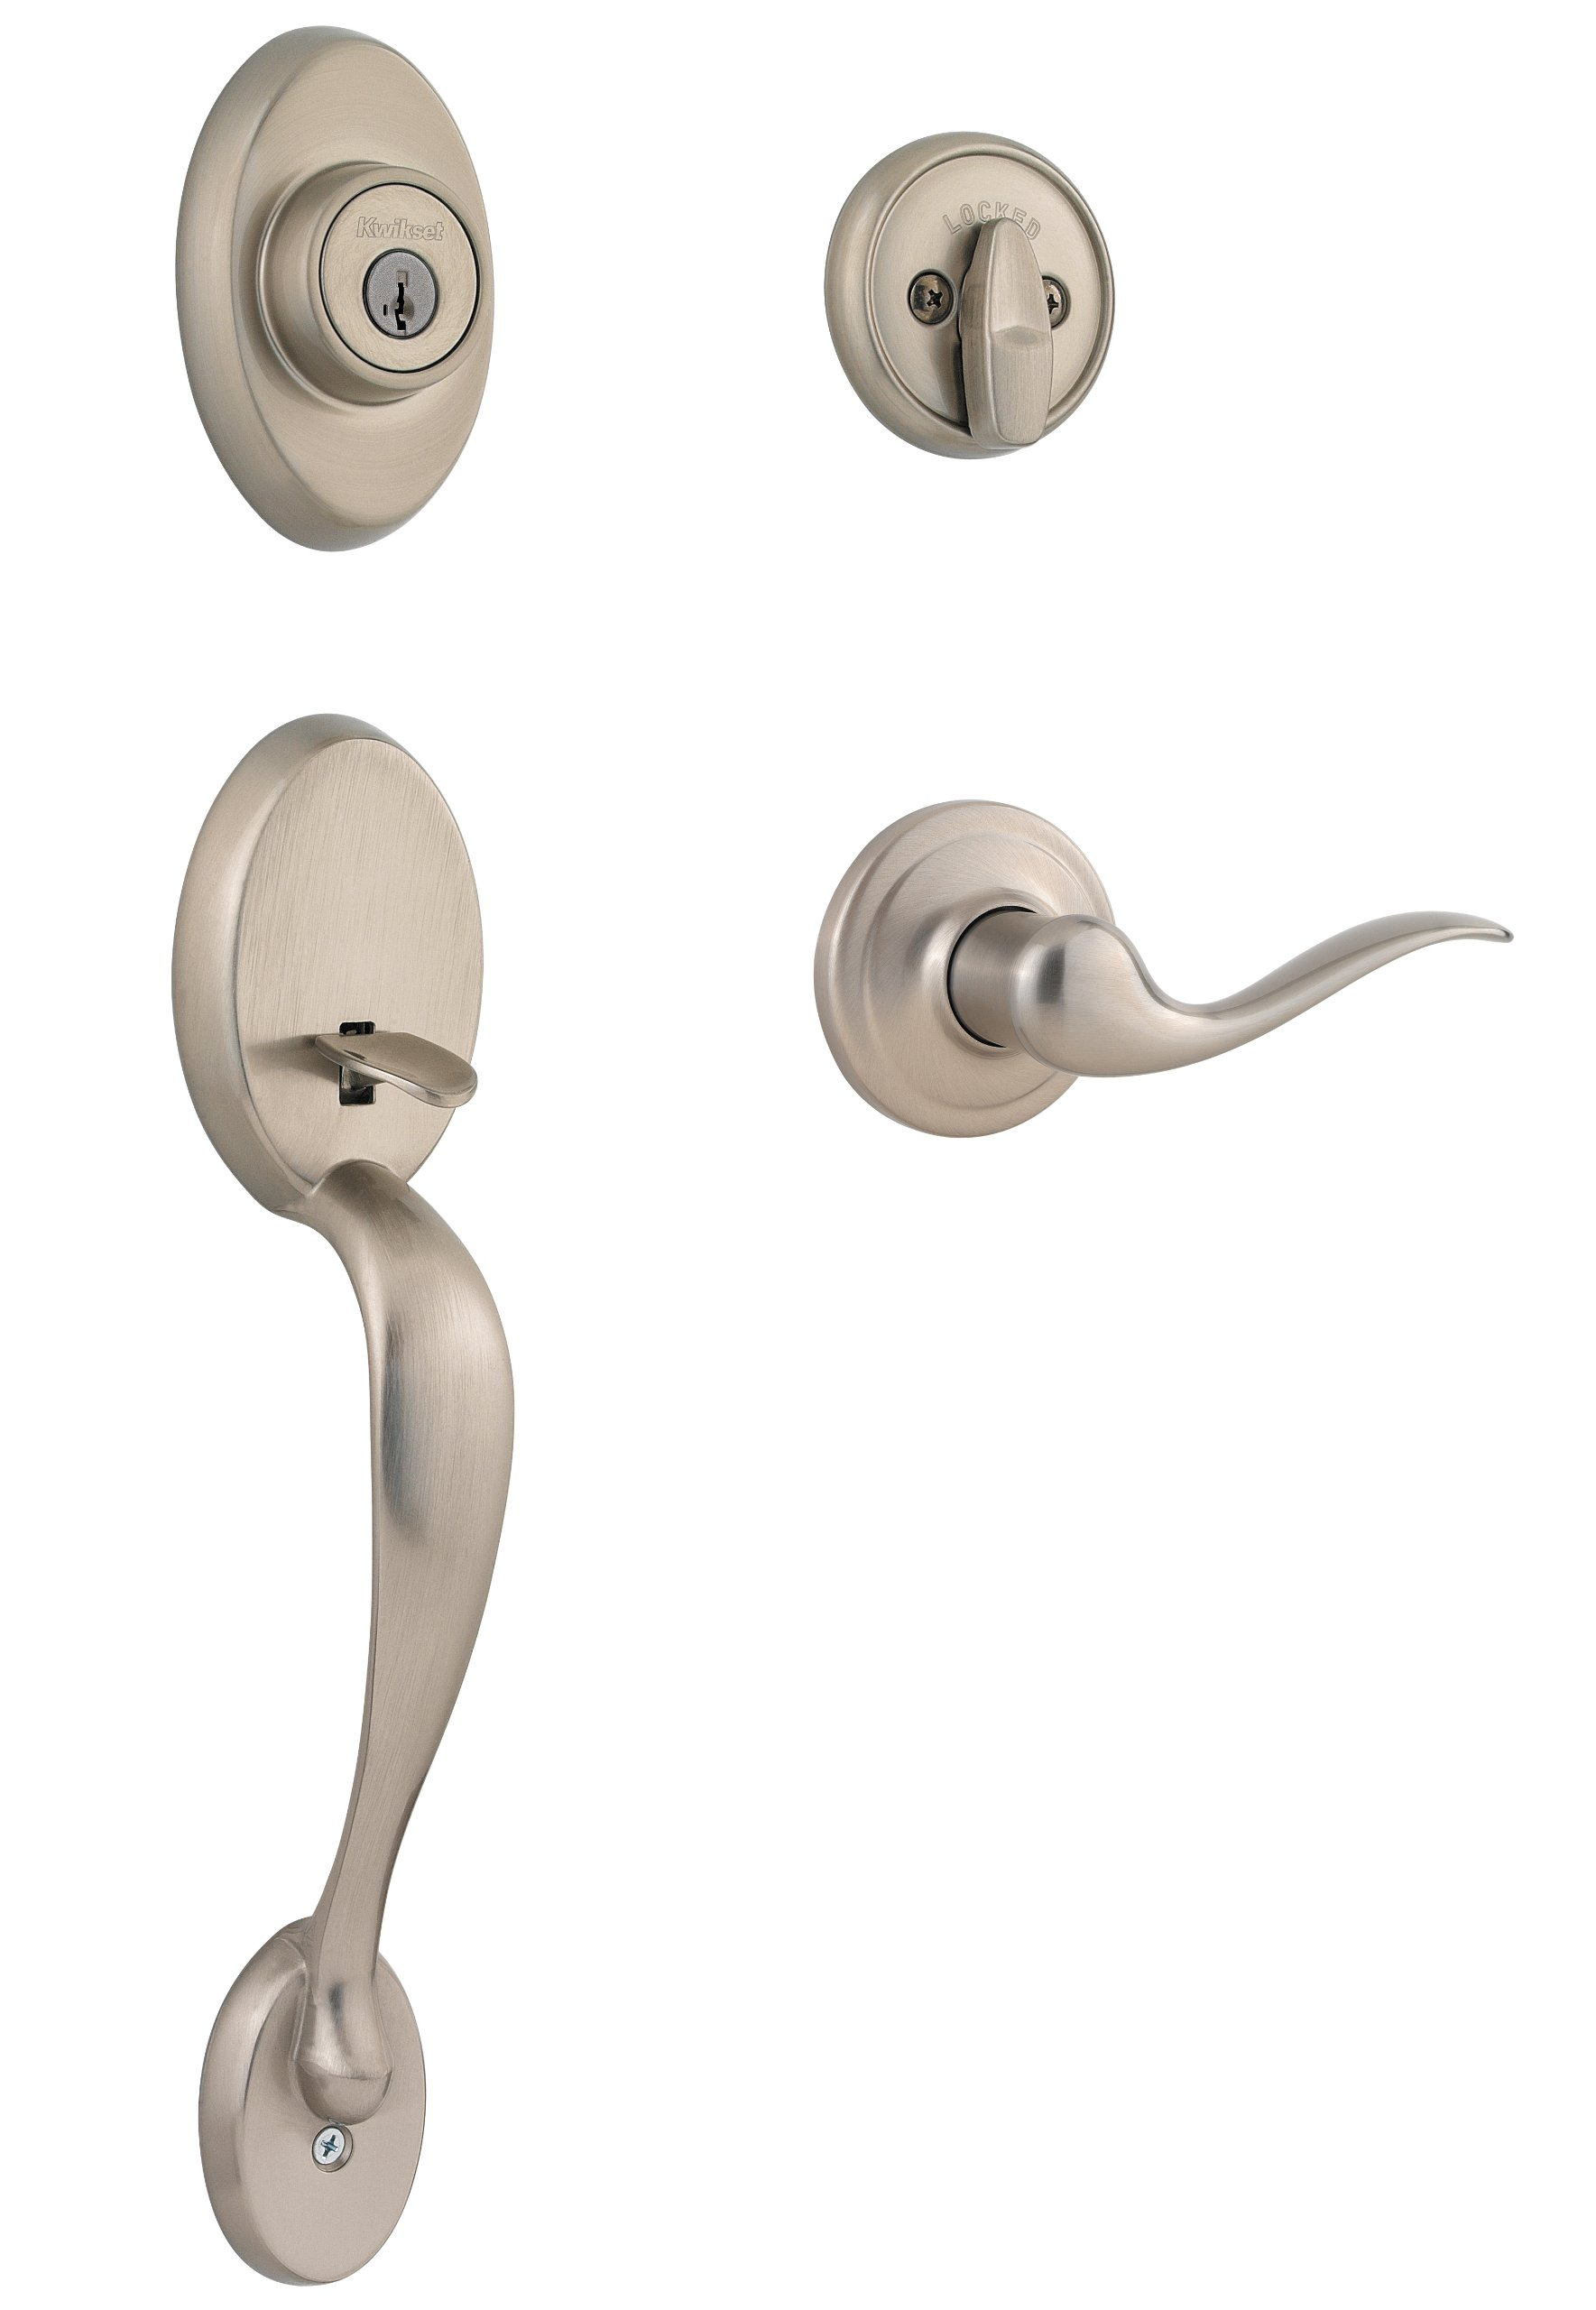 Kwikset Chelsea Single Cylinder Handleset w/Tustin Lever featuring SmartKey in Satin Nickel